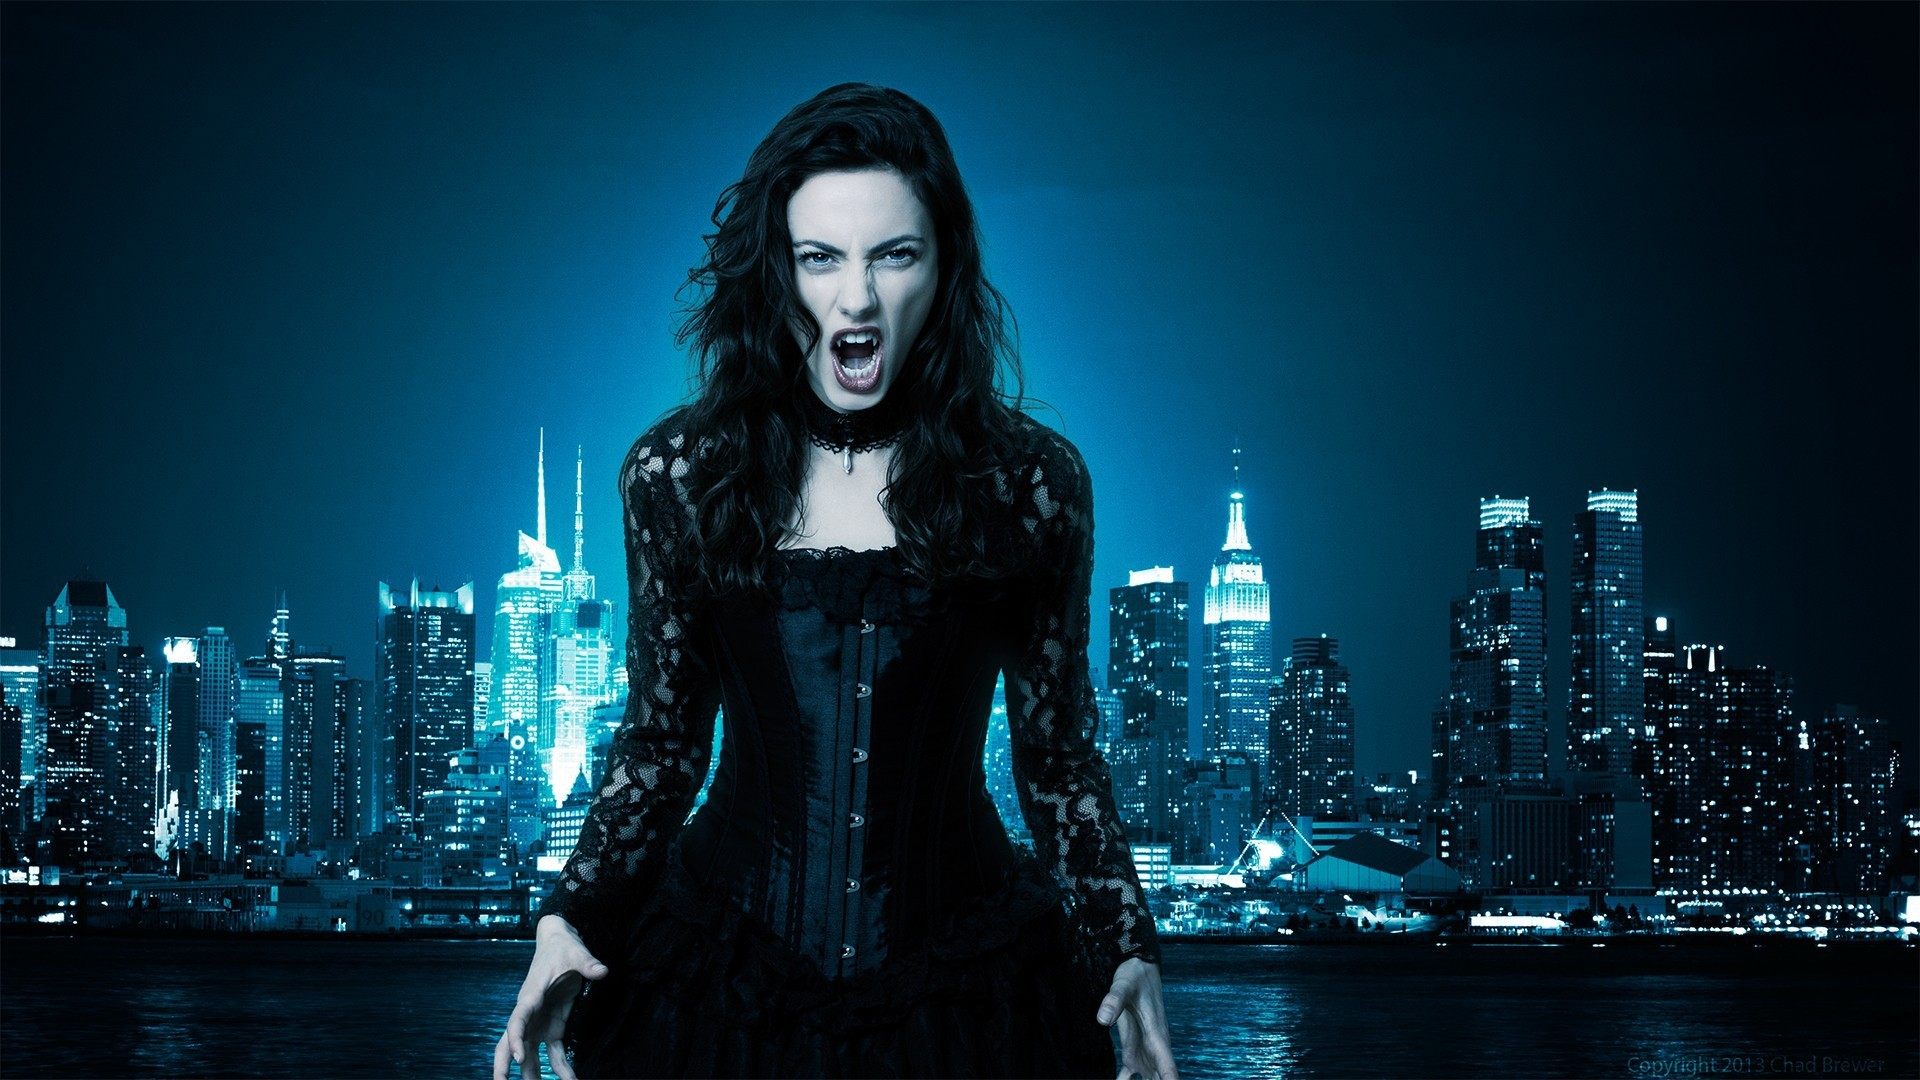 vampire wallpapers 60 images